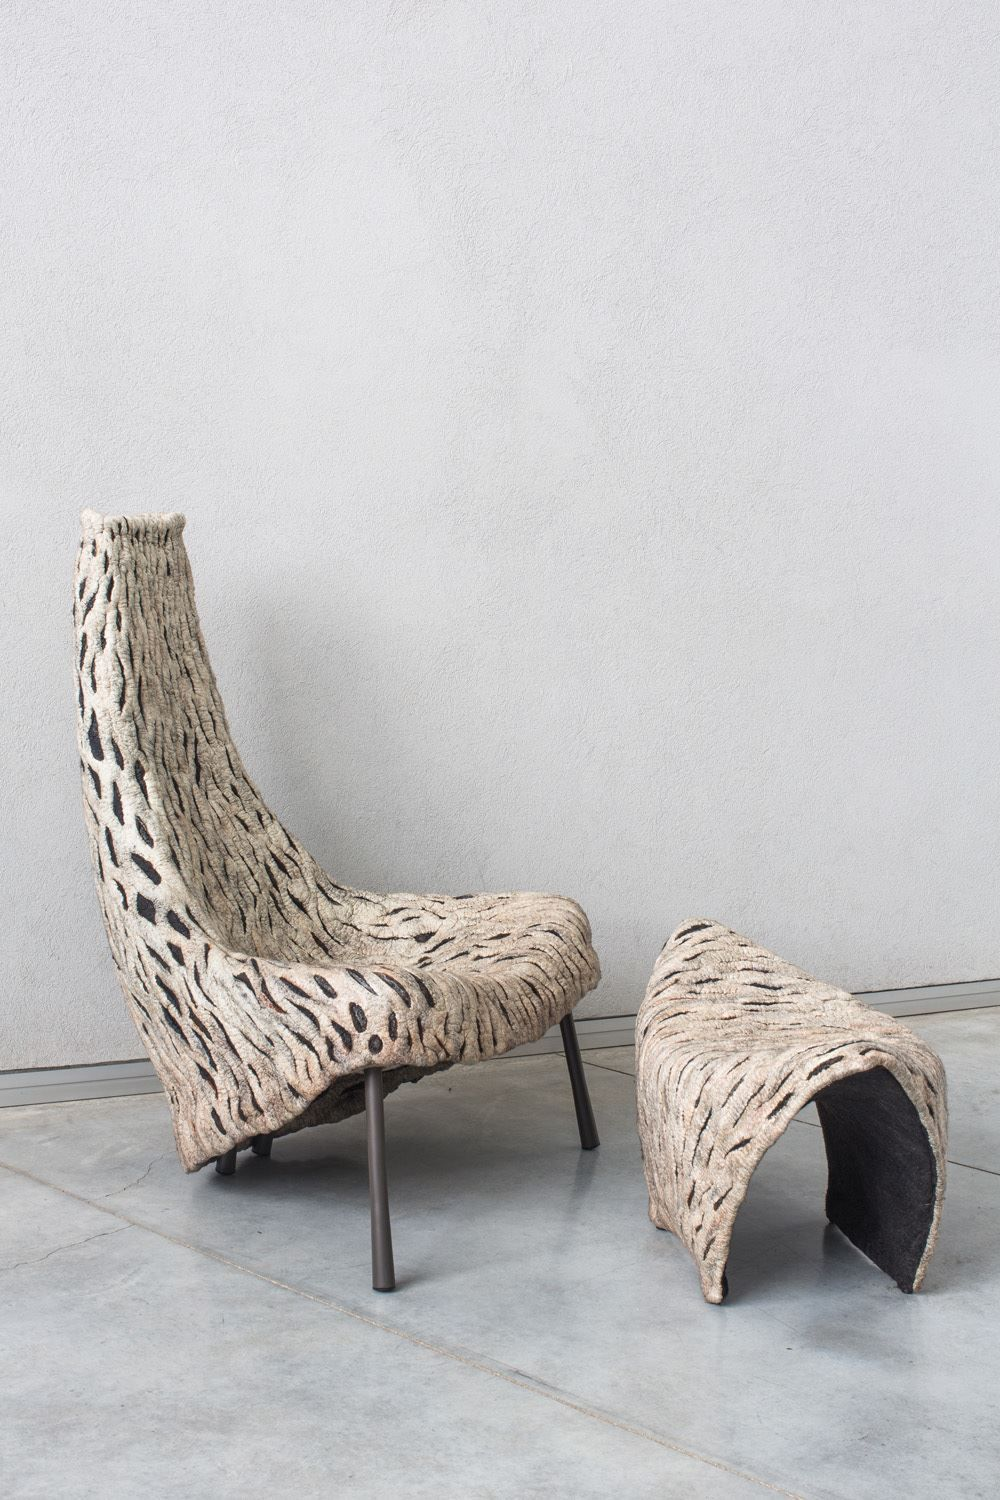 ayala serfaty armchair nuno felt handmade of wool linen and